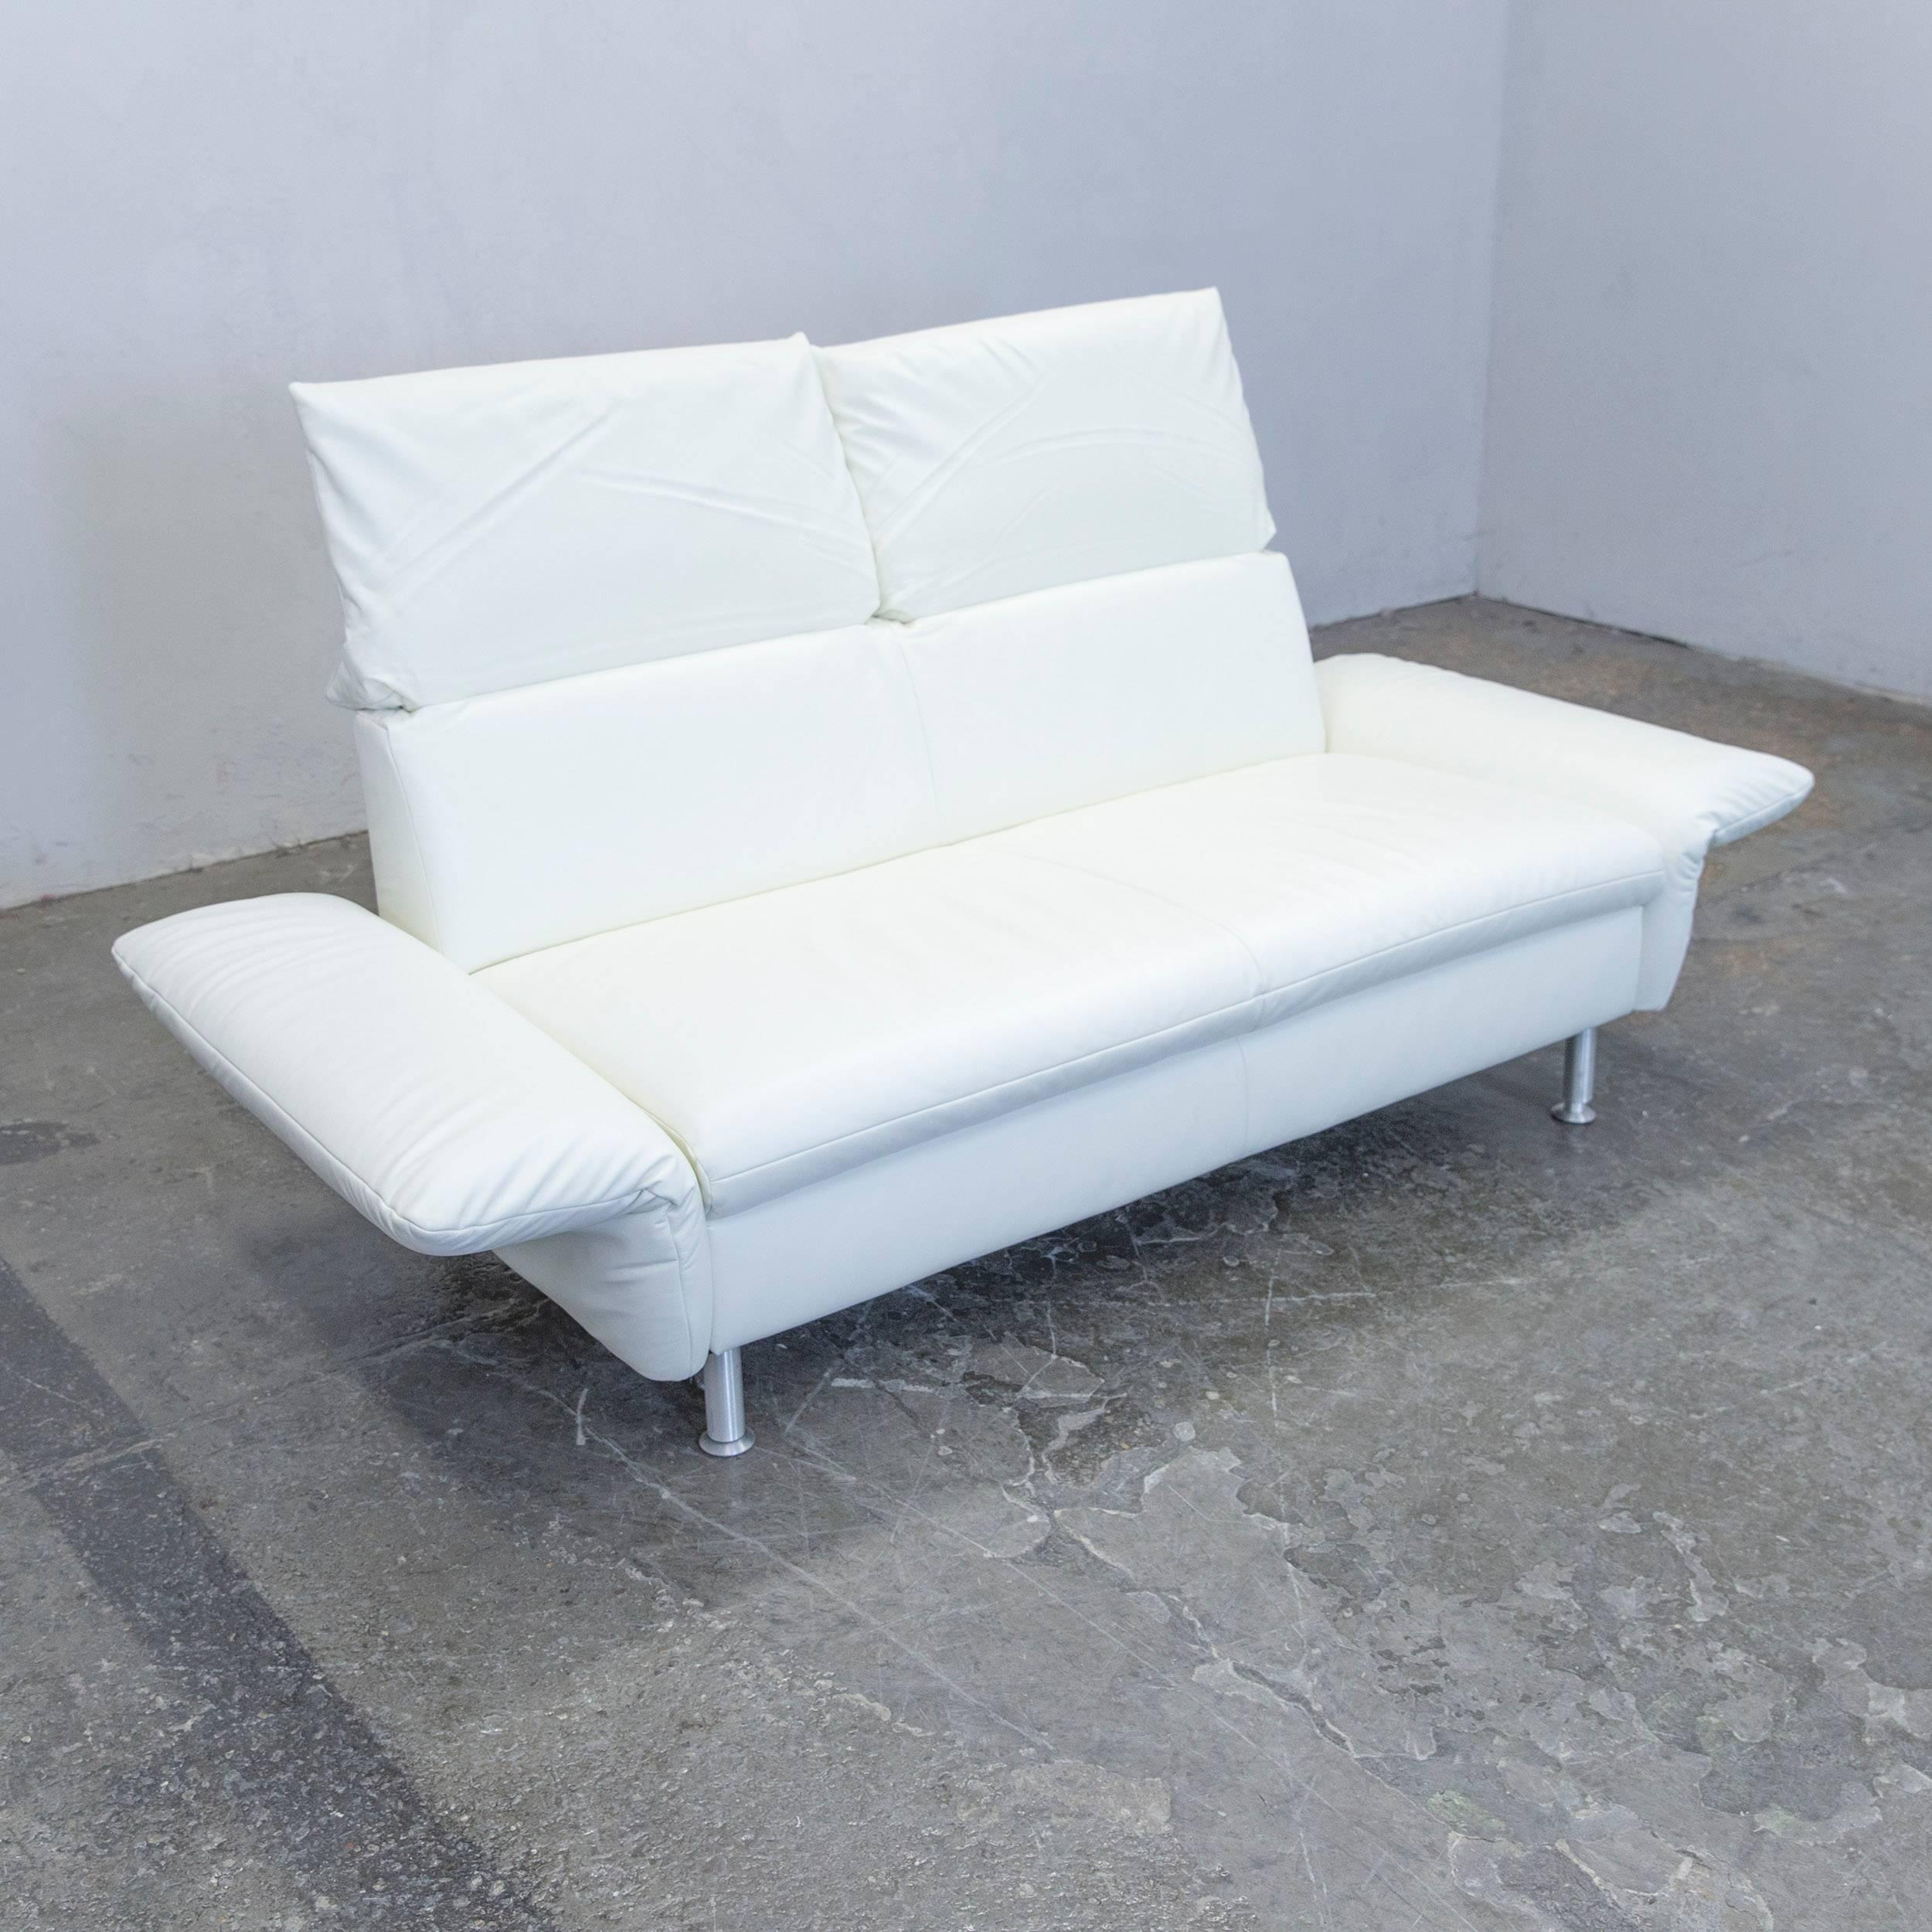 German Koinor Vista Designer Sofa Leather White Two Seat Couch Modern For  Sale